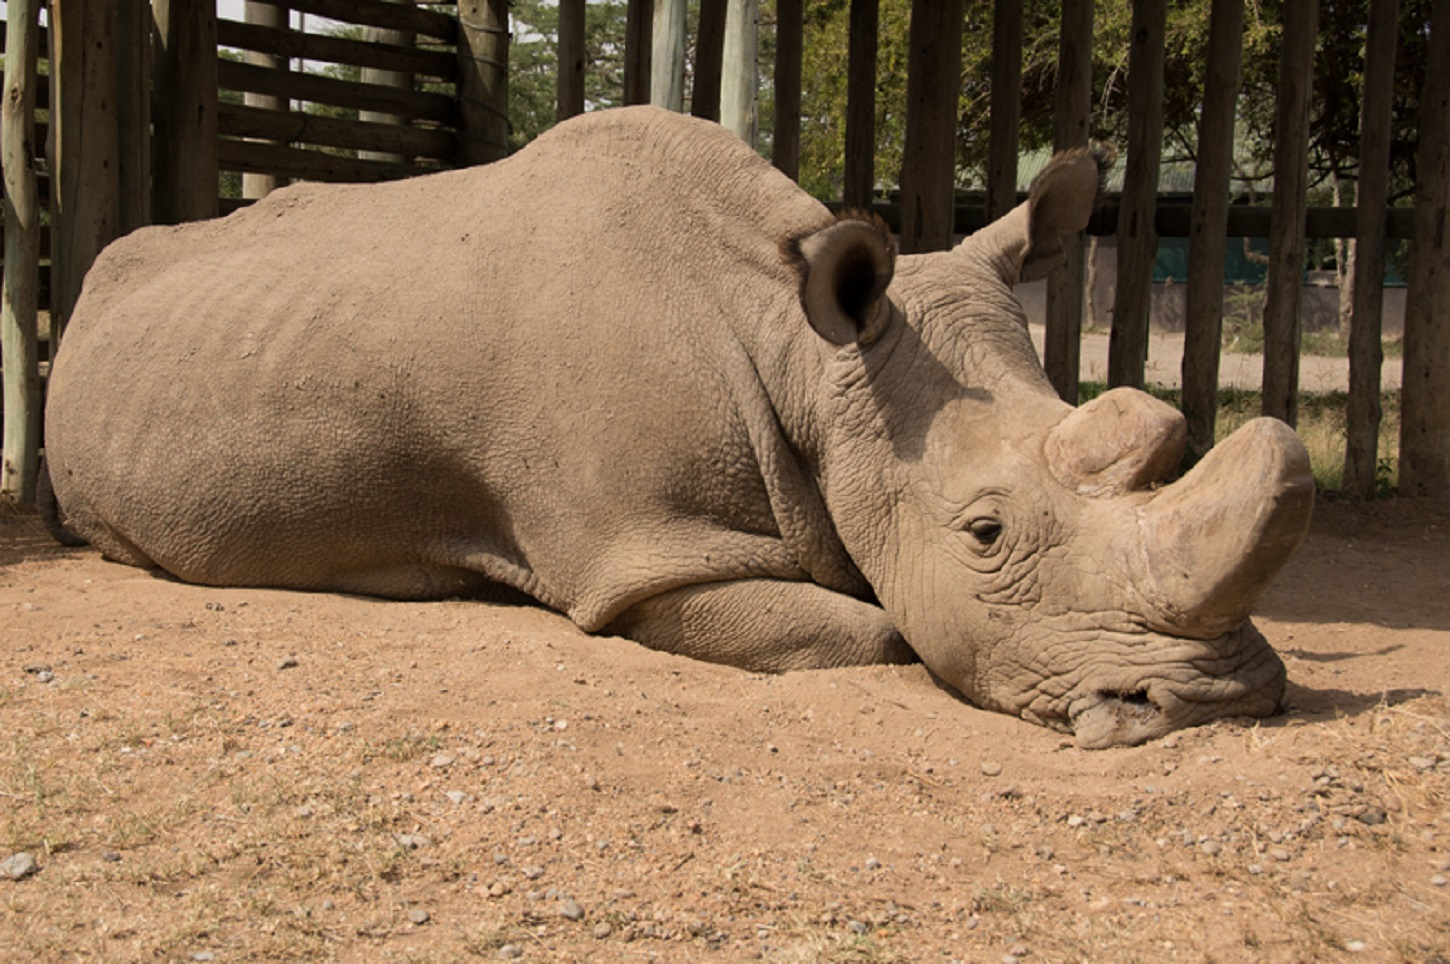 The world's only male northern white rhino, Sudan, has died aged 45 (Ol Pejeta/PA)